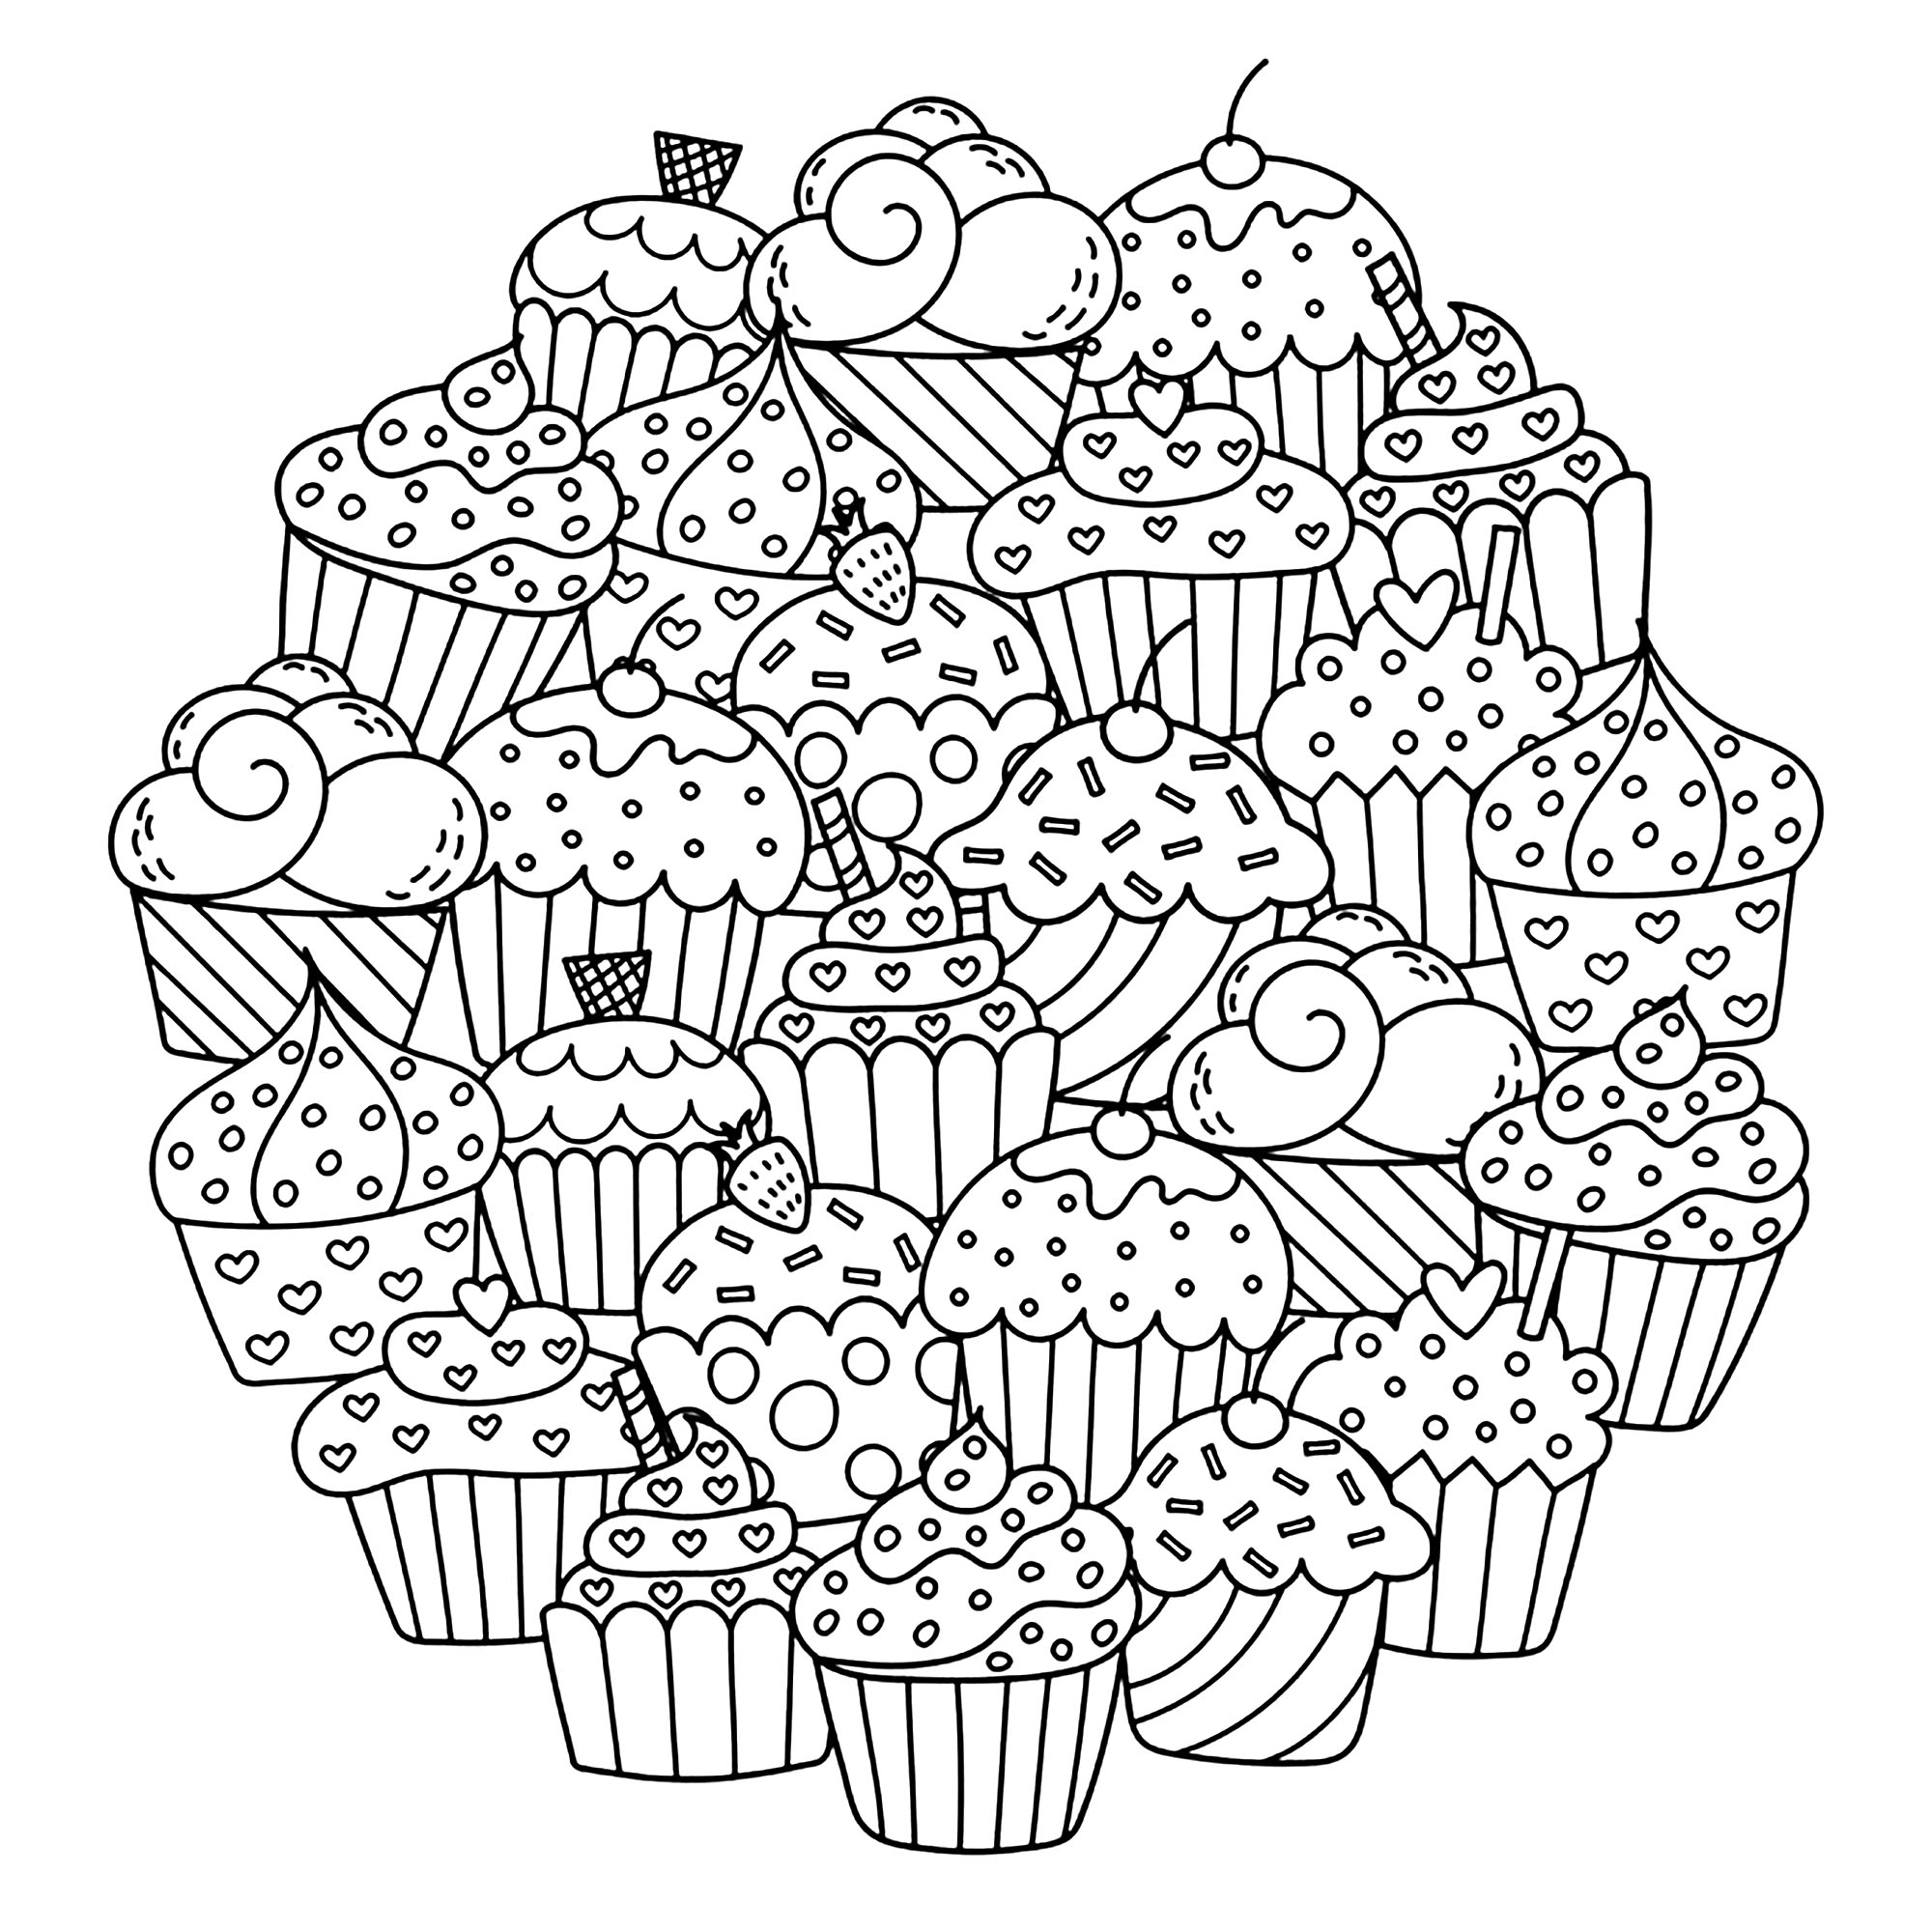 Those cute cakes are making a perfect circle to make you want to color them !